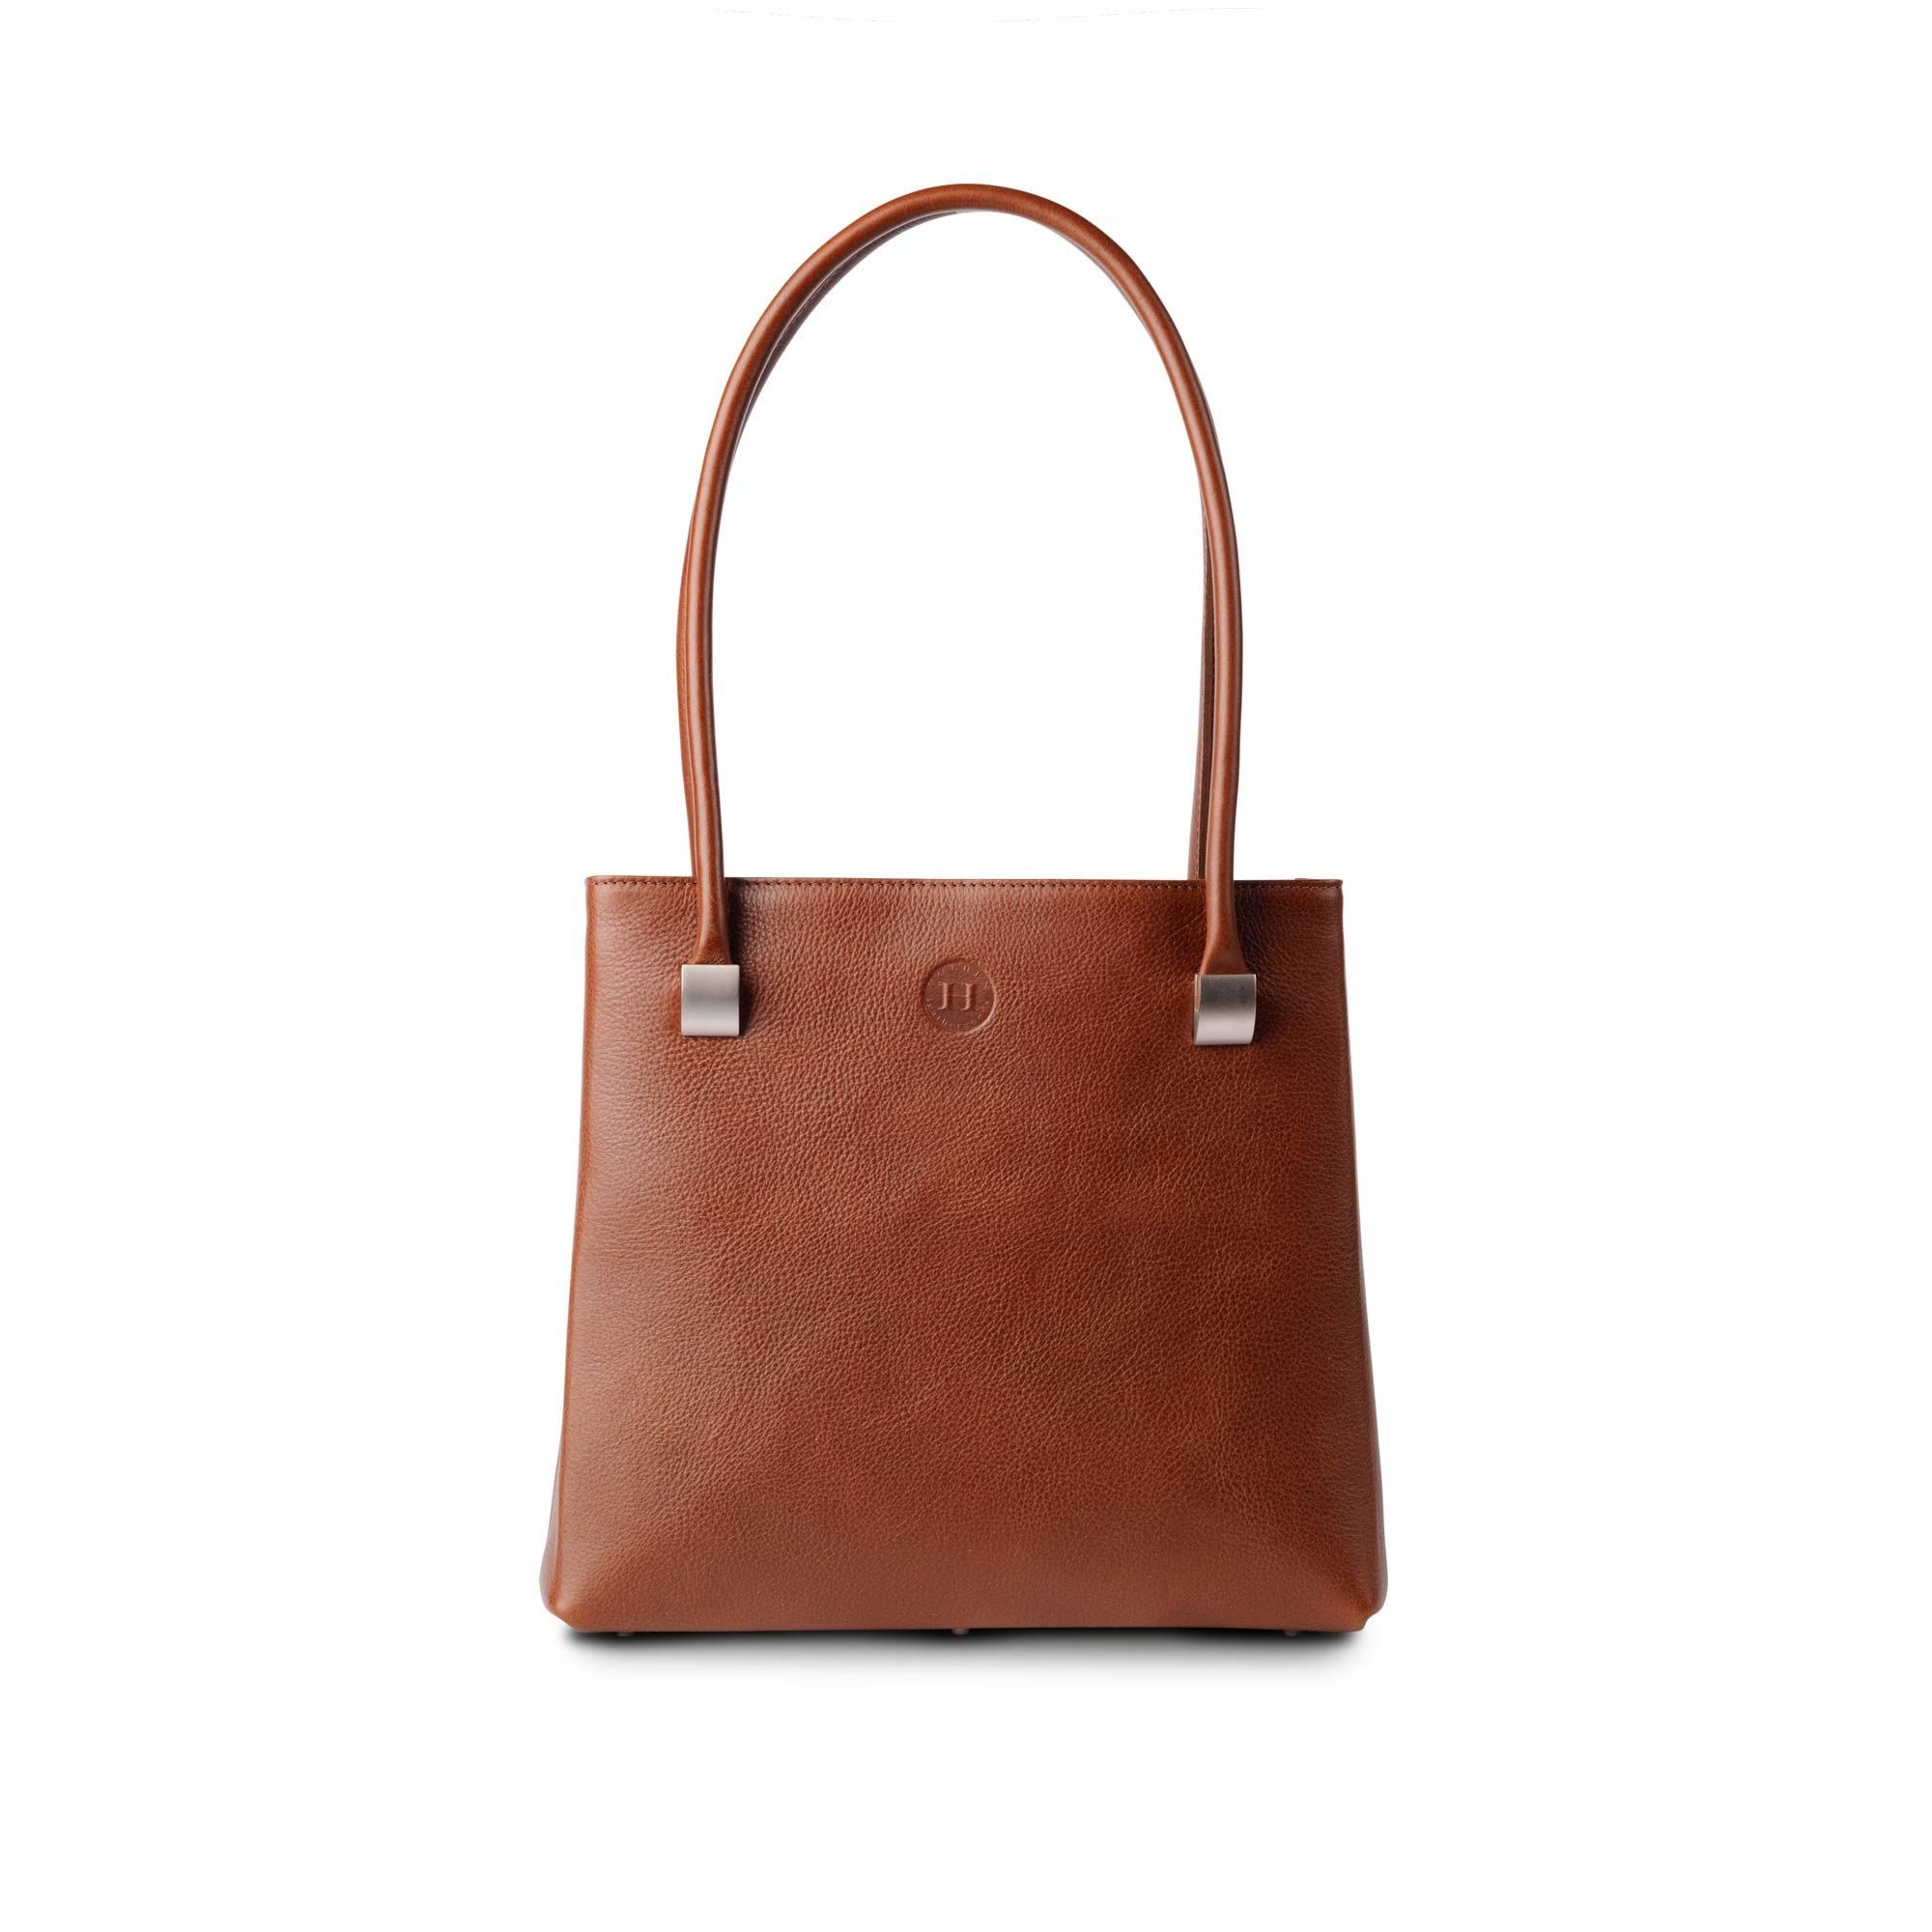 Aoife Leather Shoulder Bag Chestnut - Holden Leathergoods, leather bags handmade in Ireland